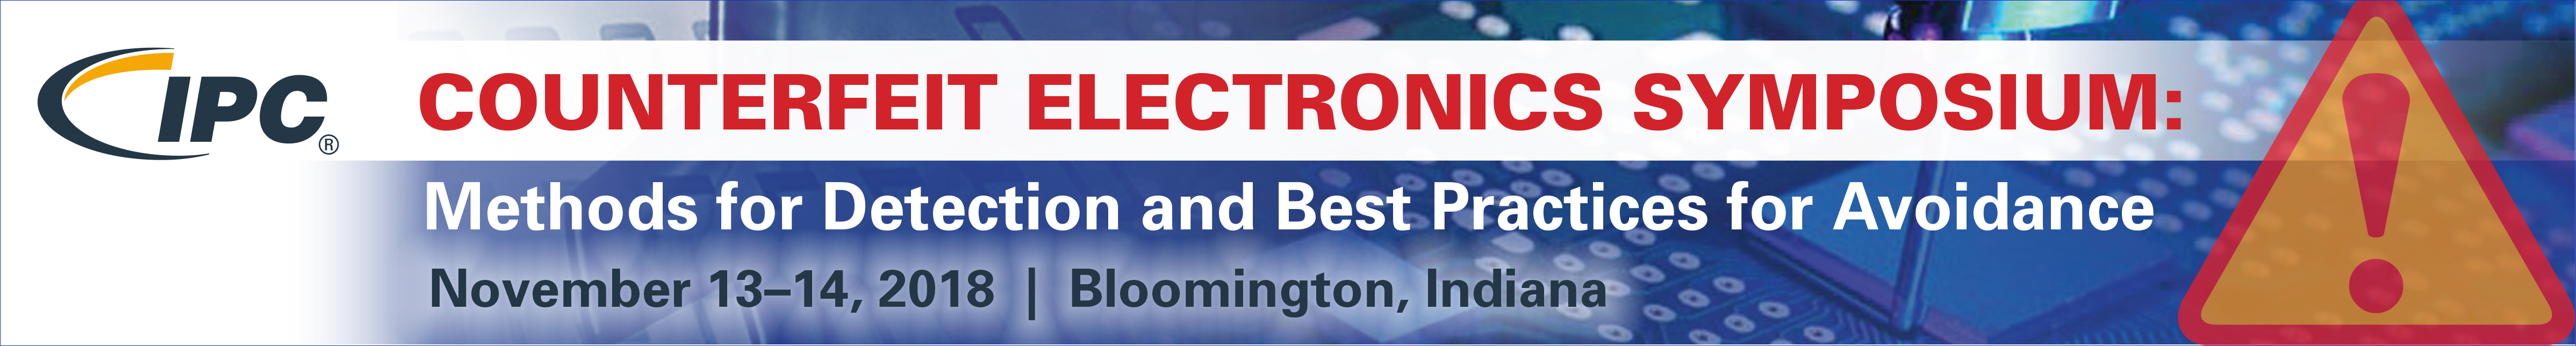 IPC Counterfeit Electronics Symposium: Methods For Detection And Best Practices For Avoidance